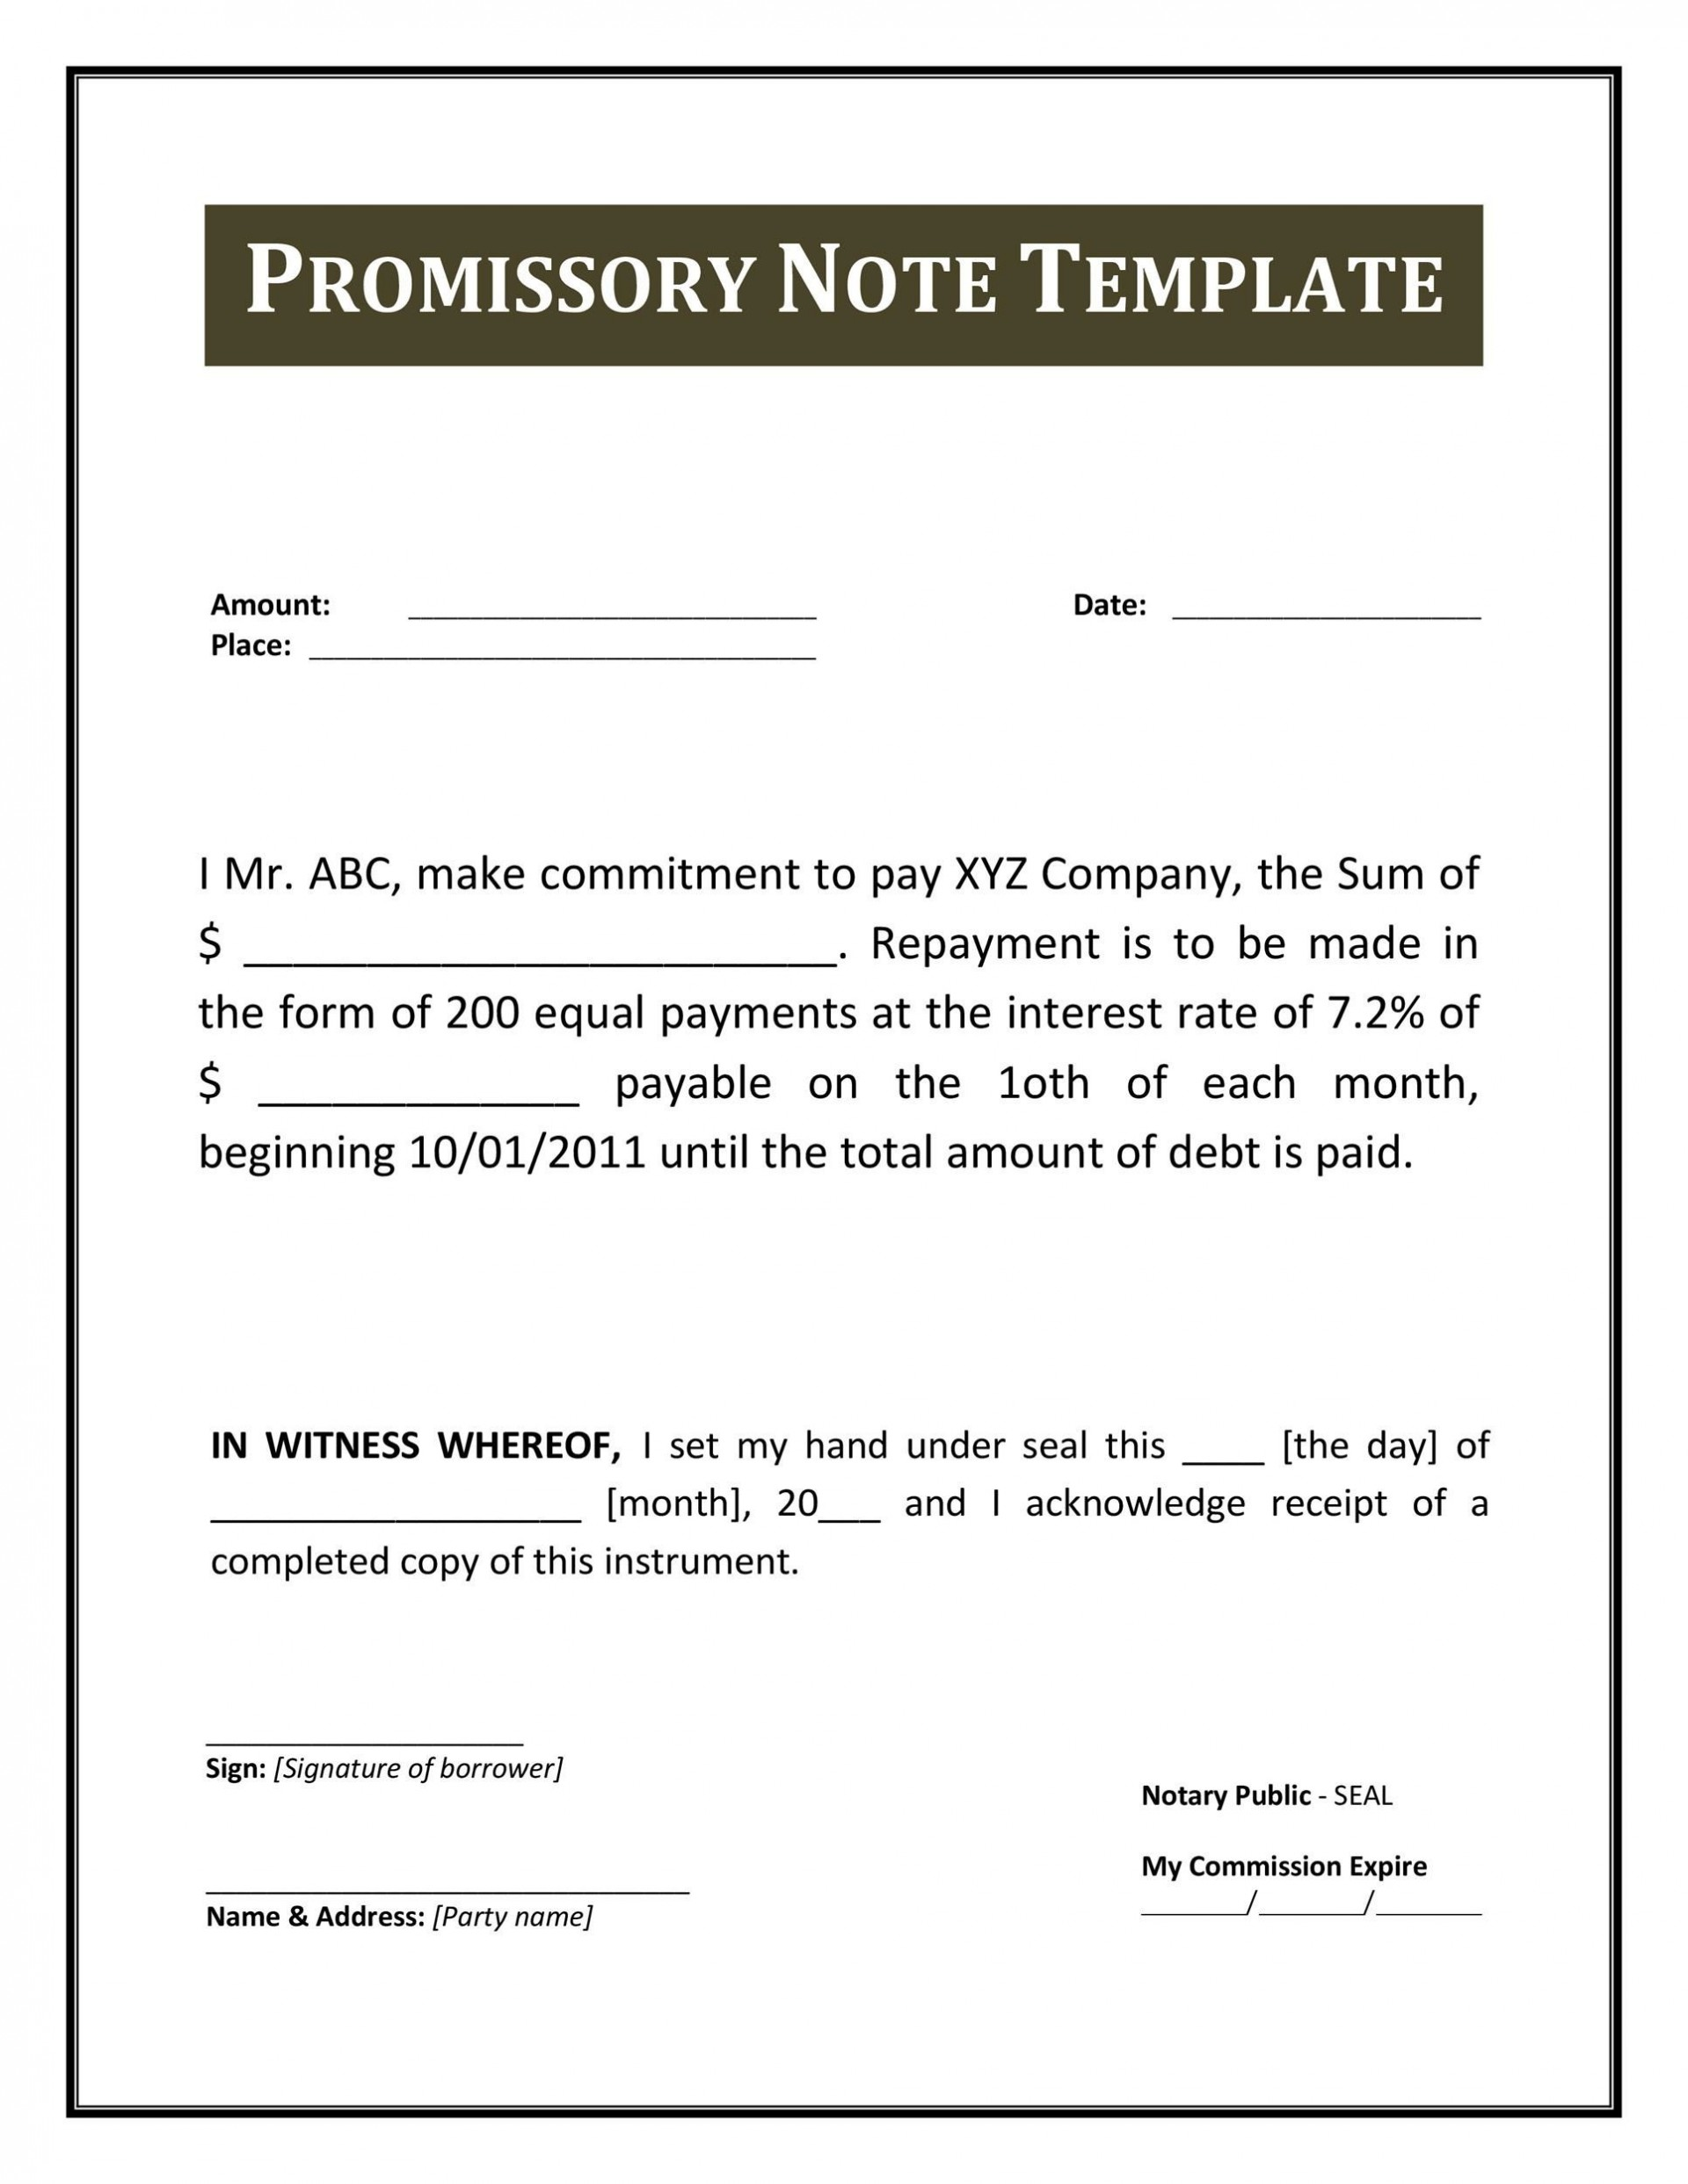 006 Staggering Real Estate Promissory Note Template Picture  Pdf The Commission Approved Earnest Money Form1920